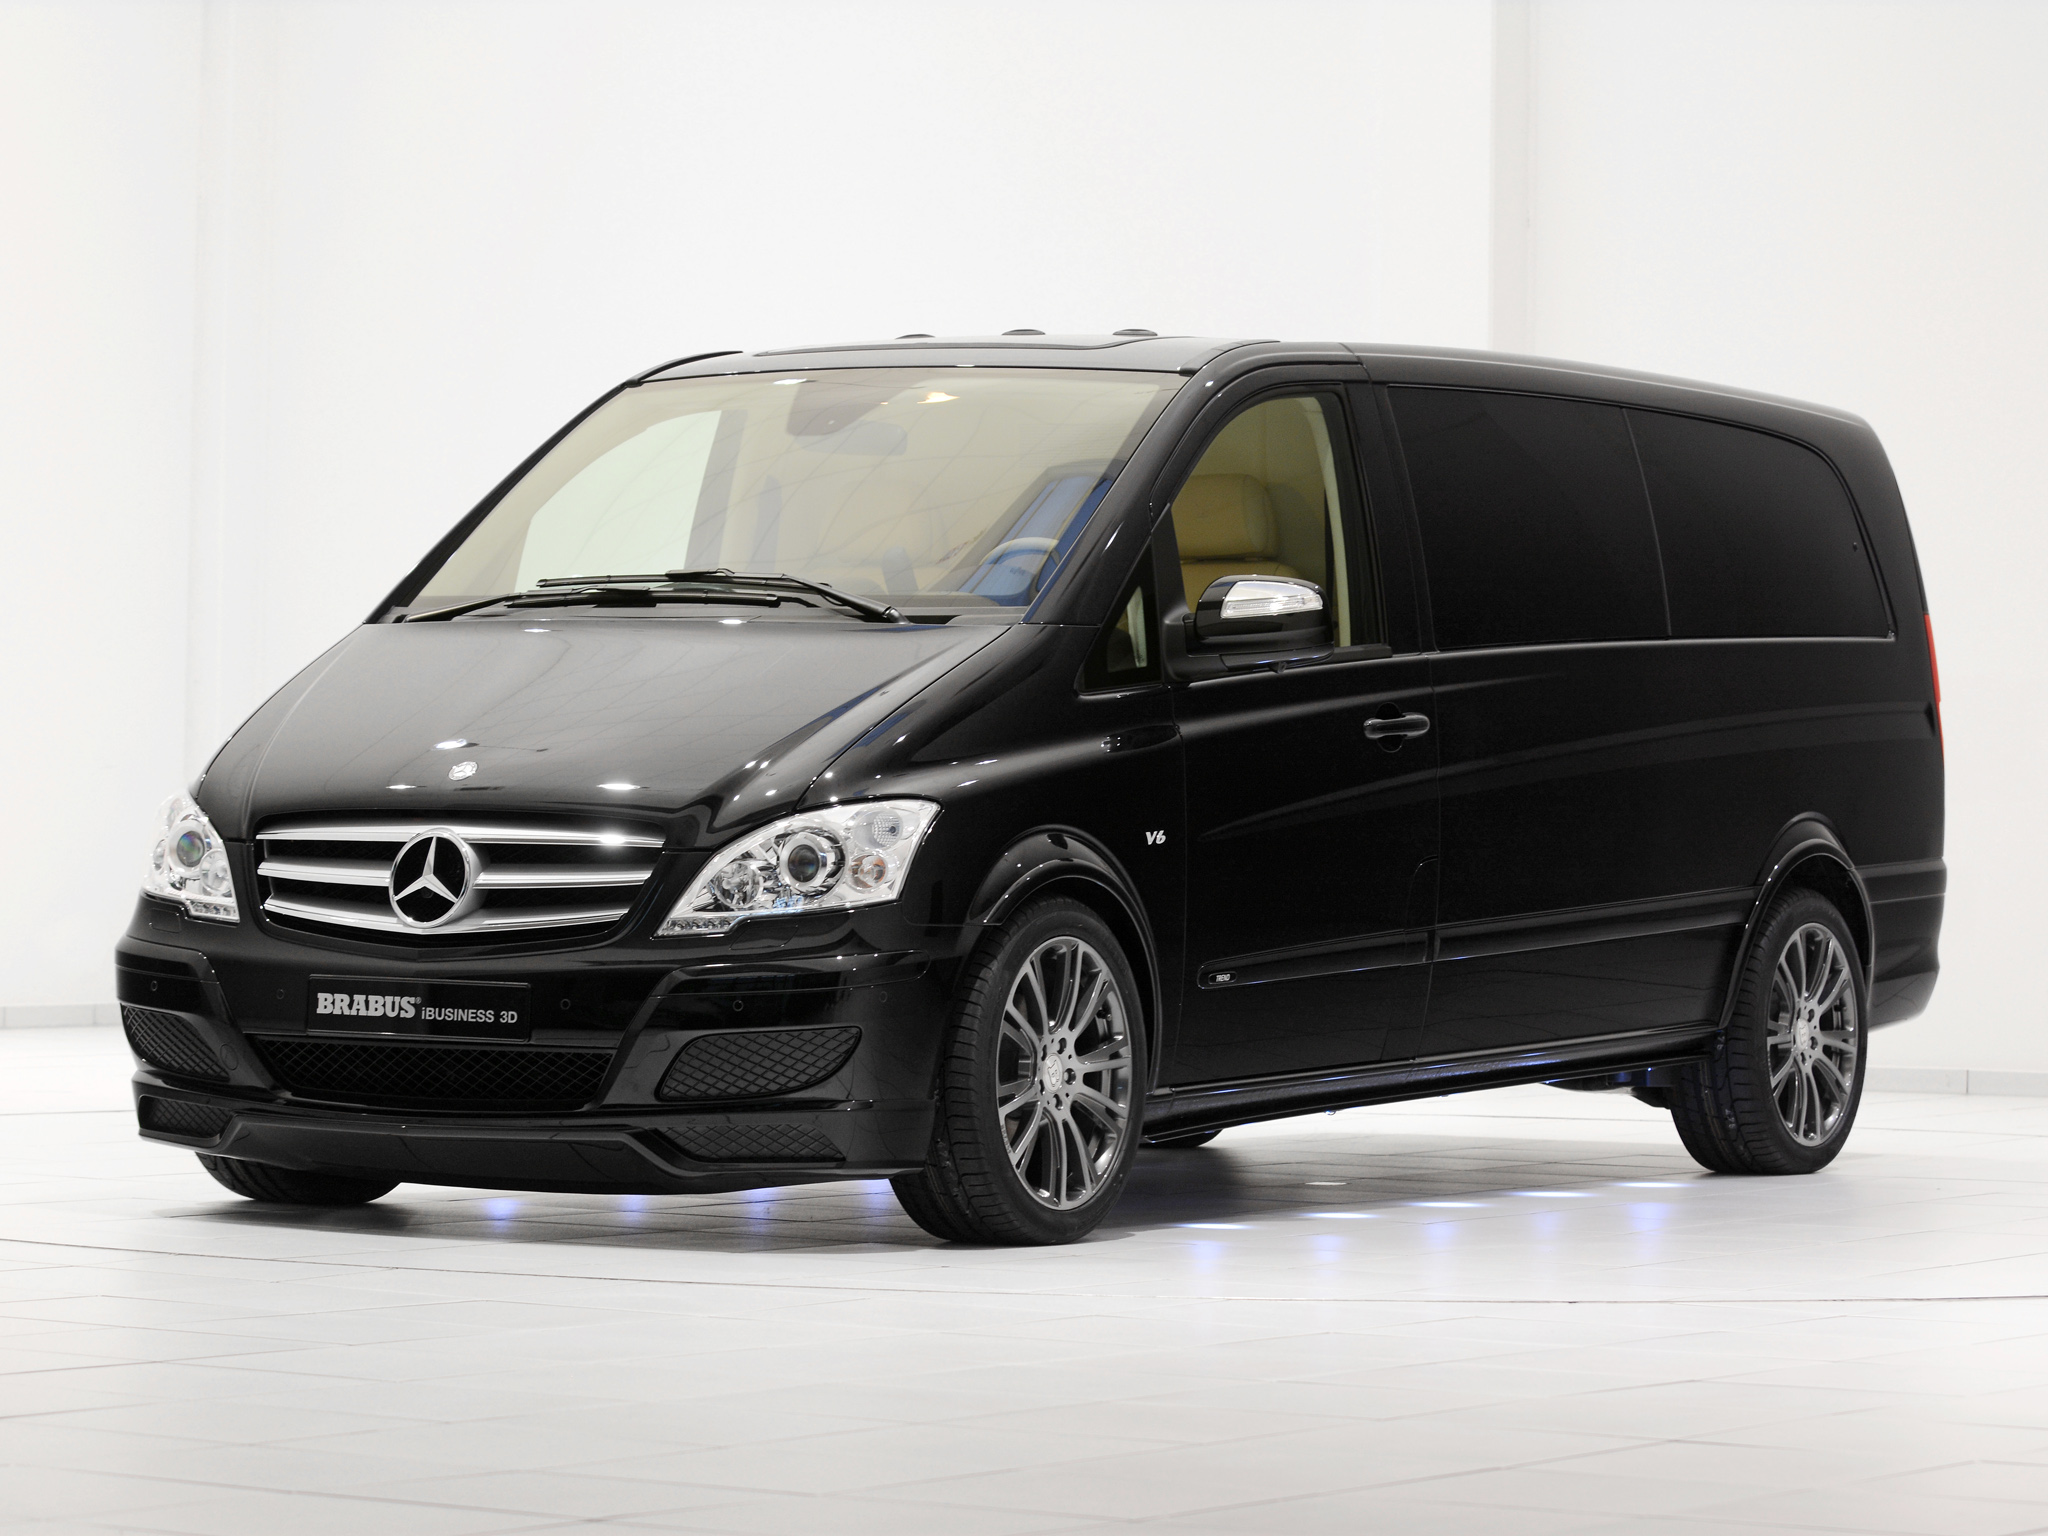 2013 mercedes viano pictures information and specs. Black Bedroom Furniture Sets. Home Design Ideas